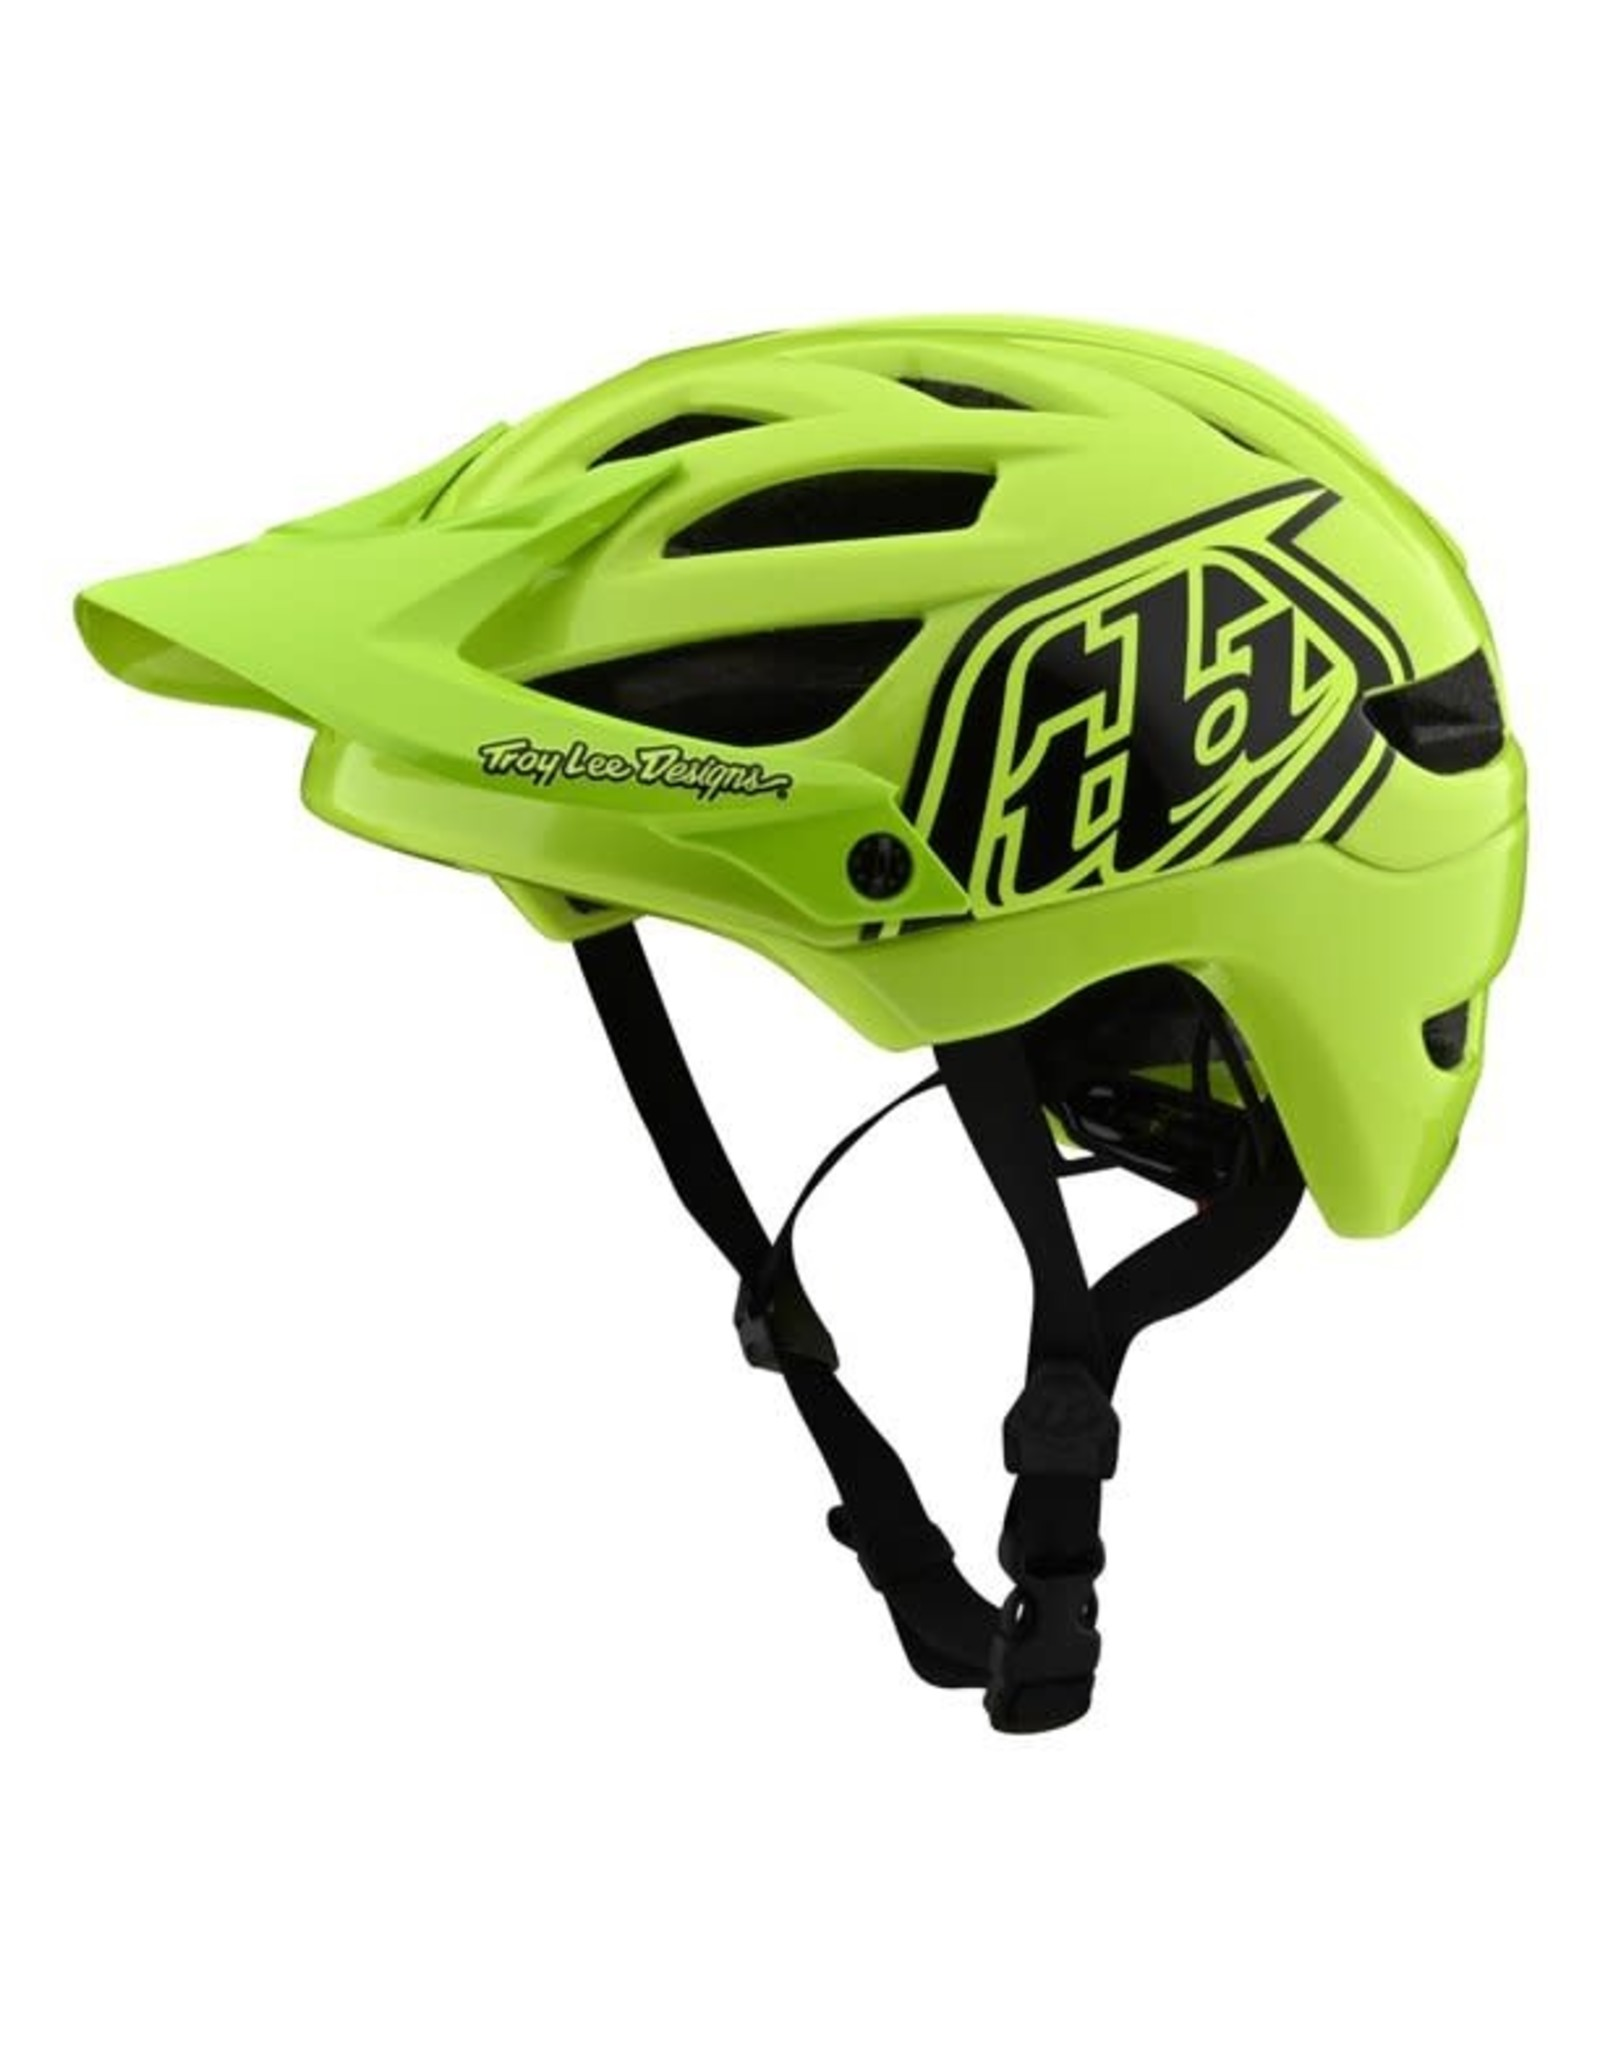 A1 HELMET; DRONE FLO YELLOW / BLACK YOUTH